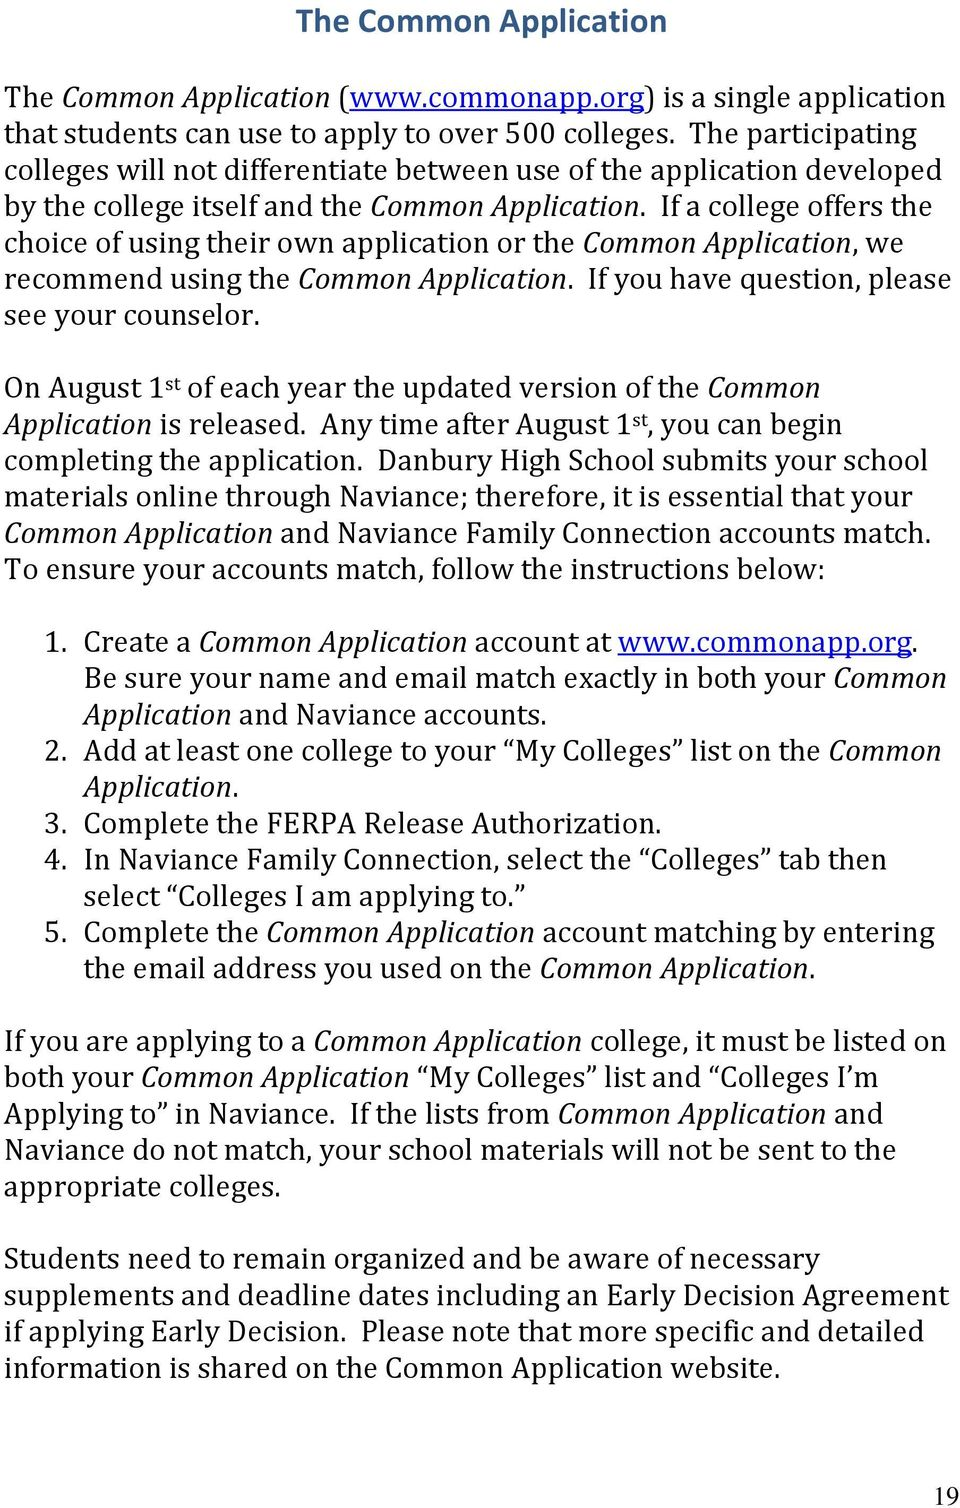 If a college offers the choice of using their own application or the Common Application, we recommend using the Common Application. If you have question, please see your counselor.